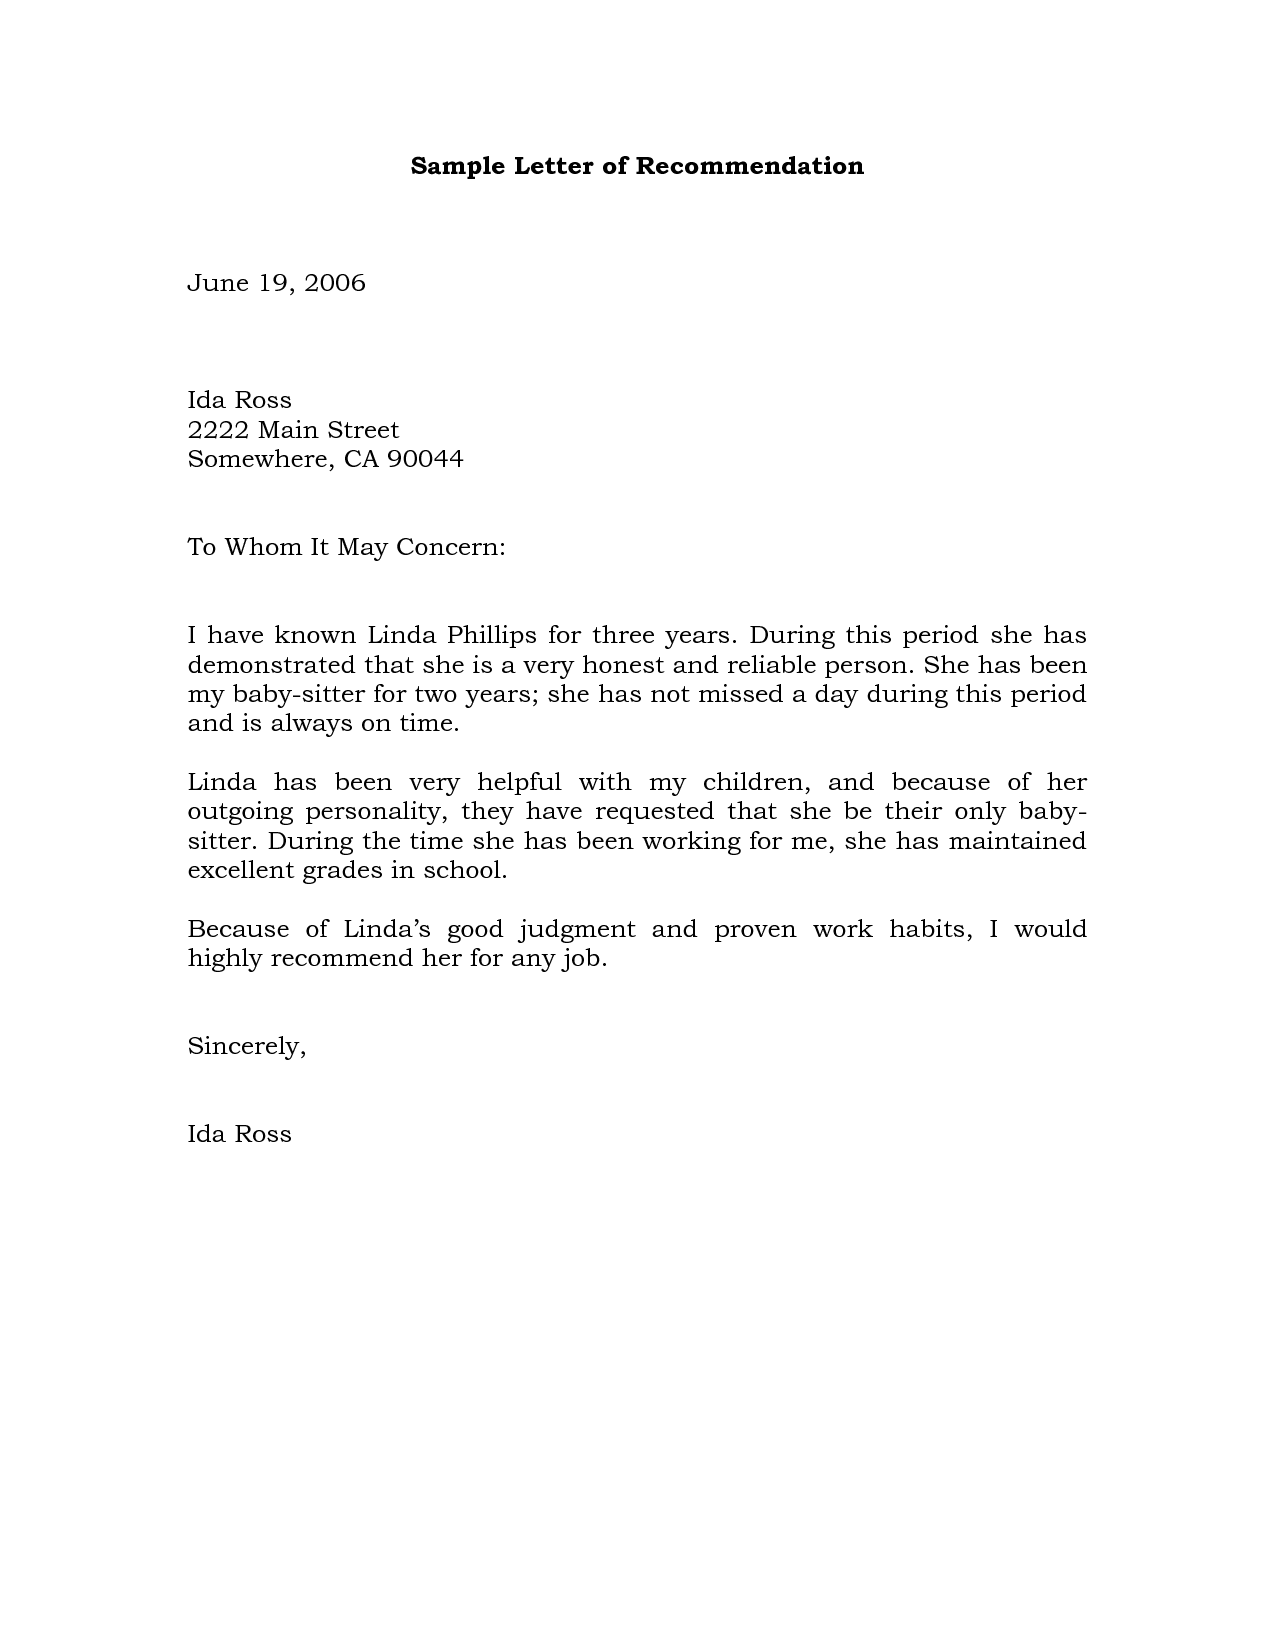 Request For Recommendation Letter Sample